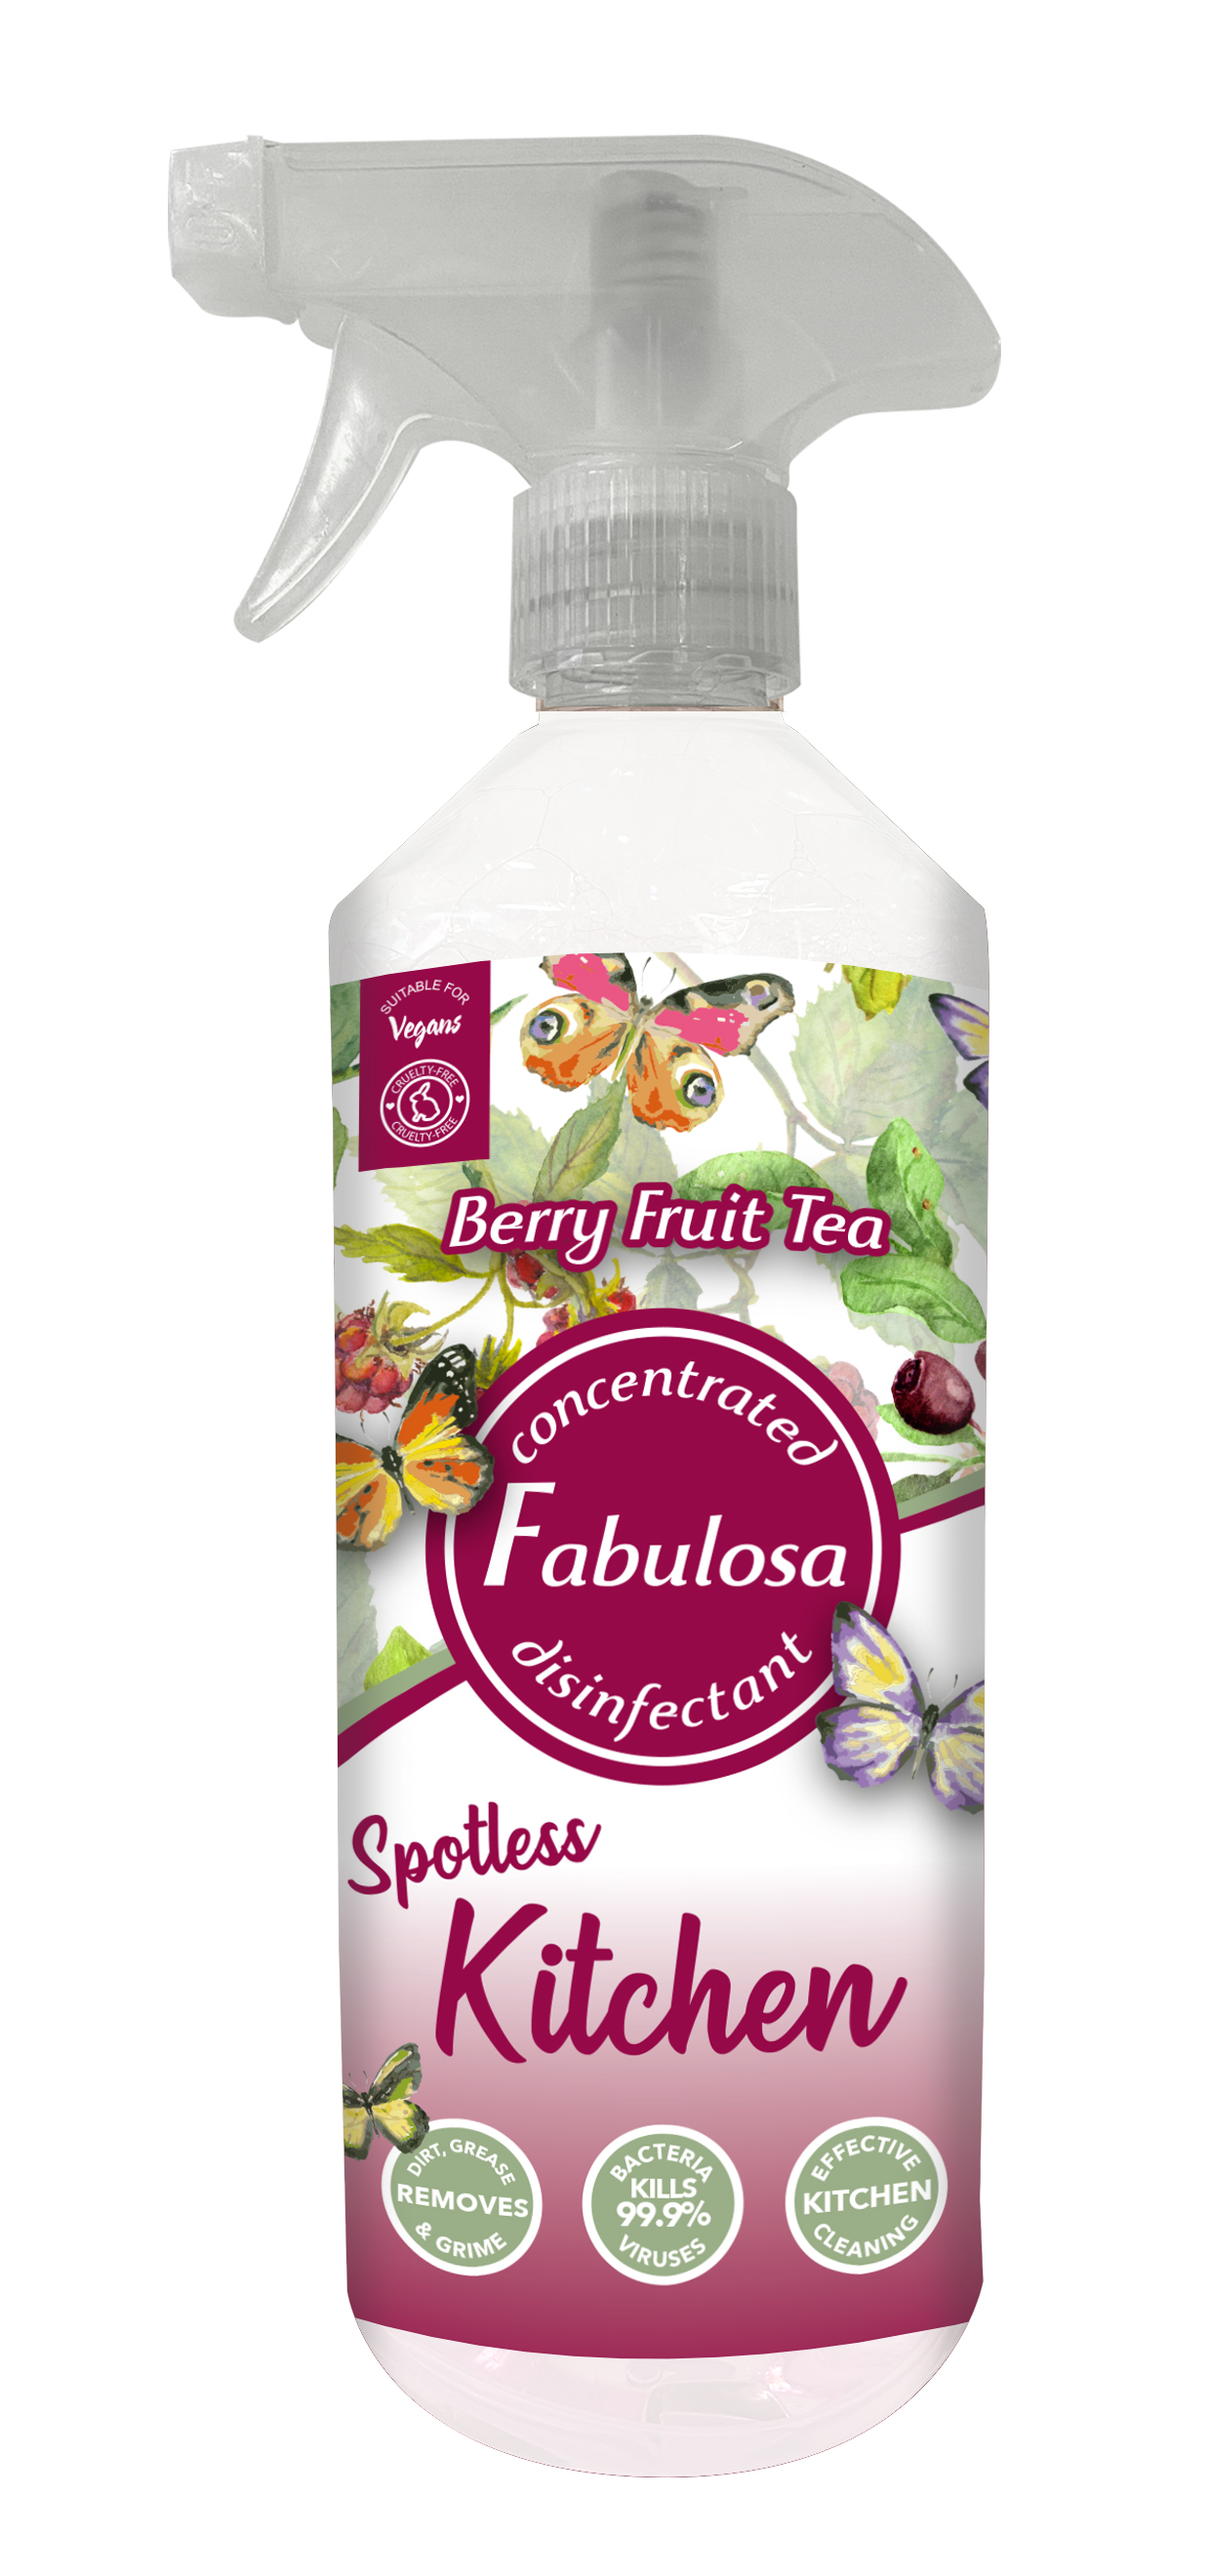 The Fabulosa berry fruit tea spotless kitchen cleaner spray is just £1 for 500ml